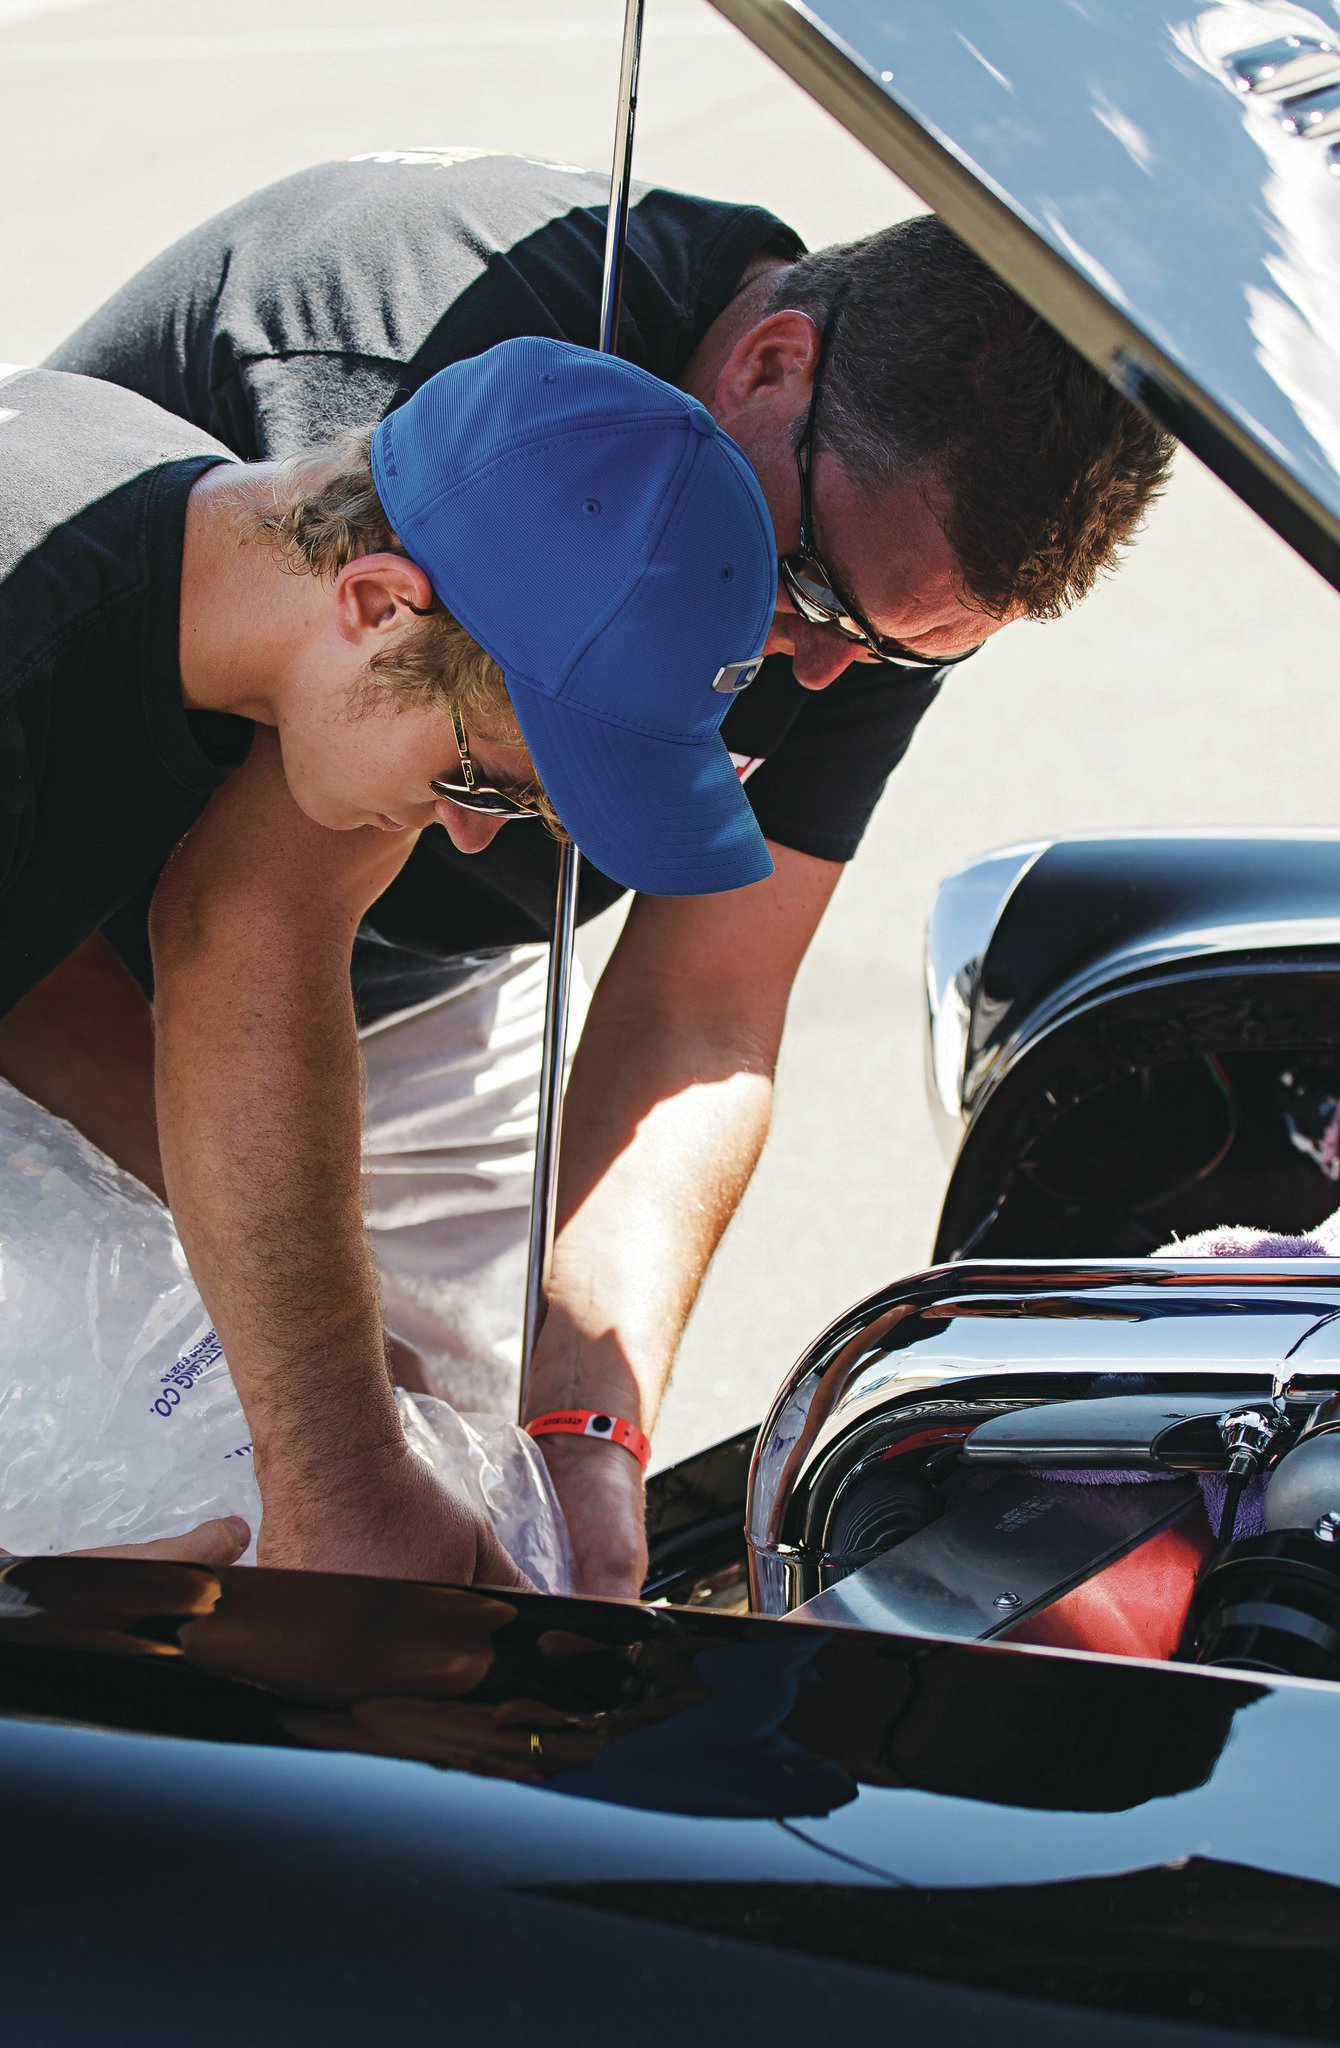 Like father, like son. Filling the air-to-ice water intercooler and bonding over fast cars.